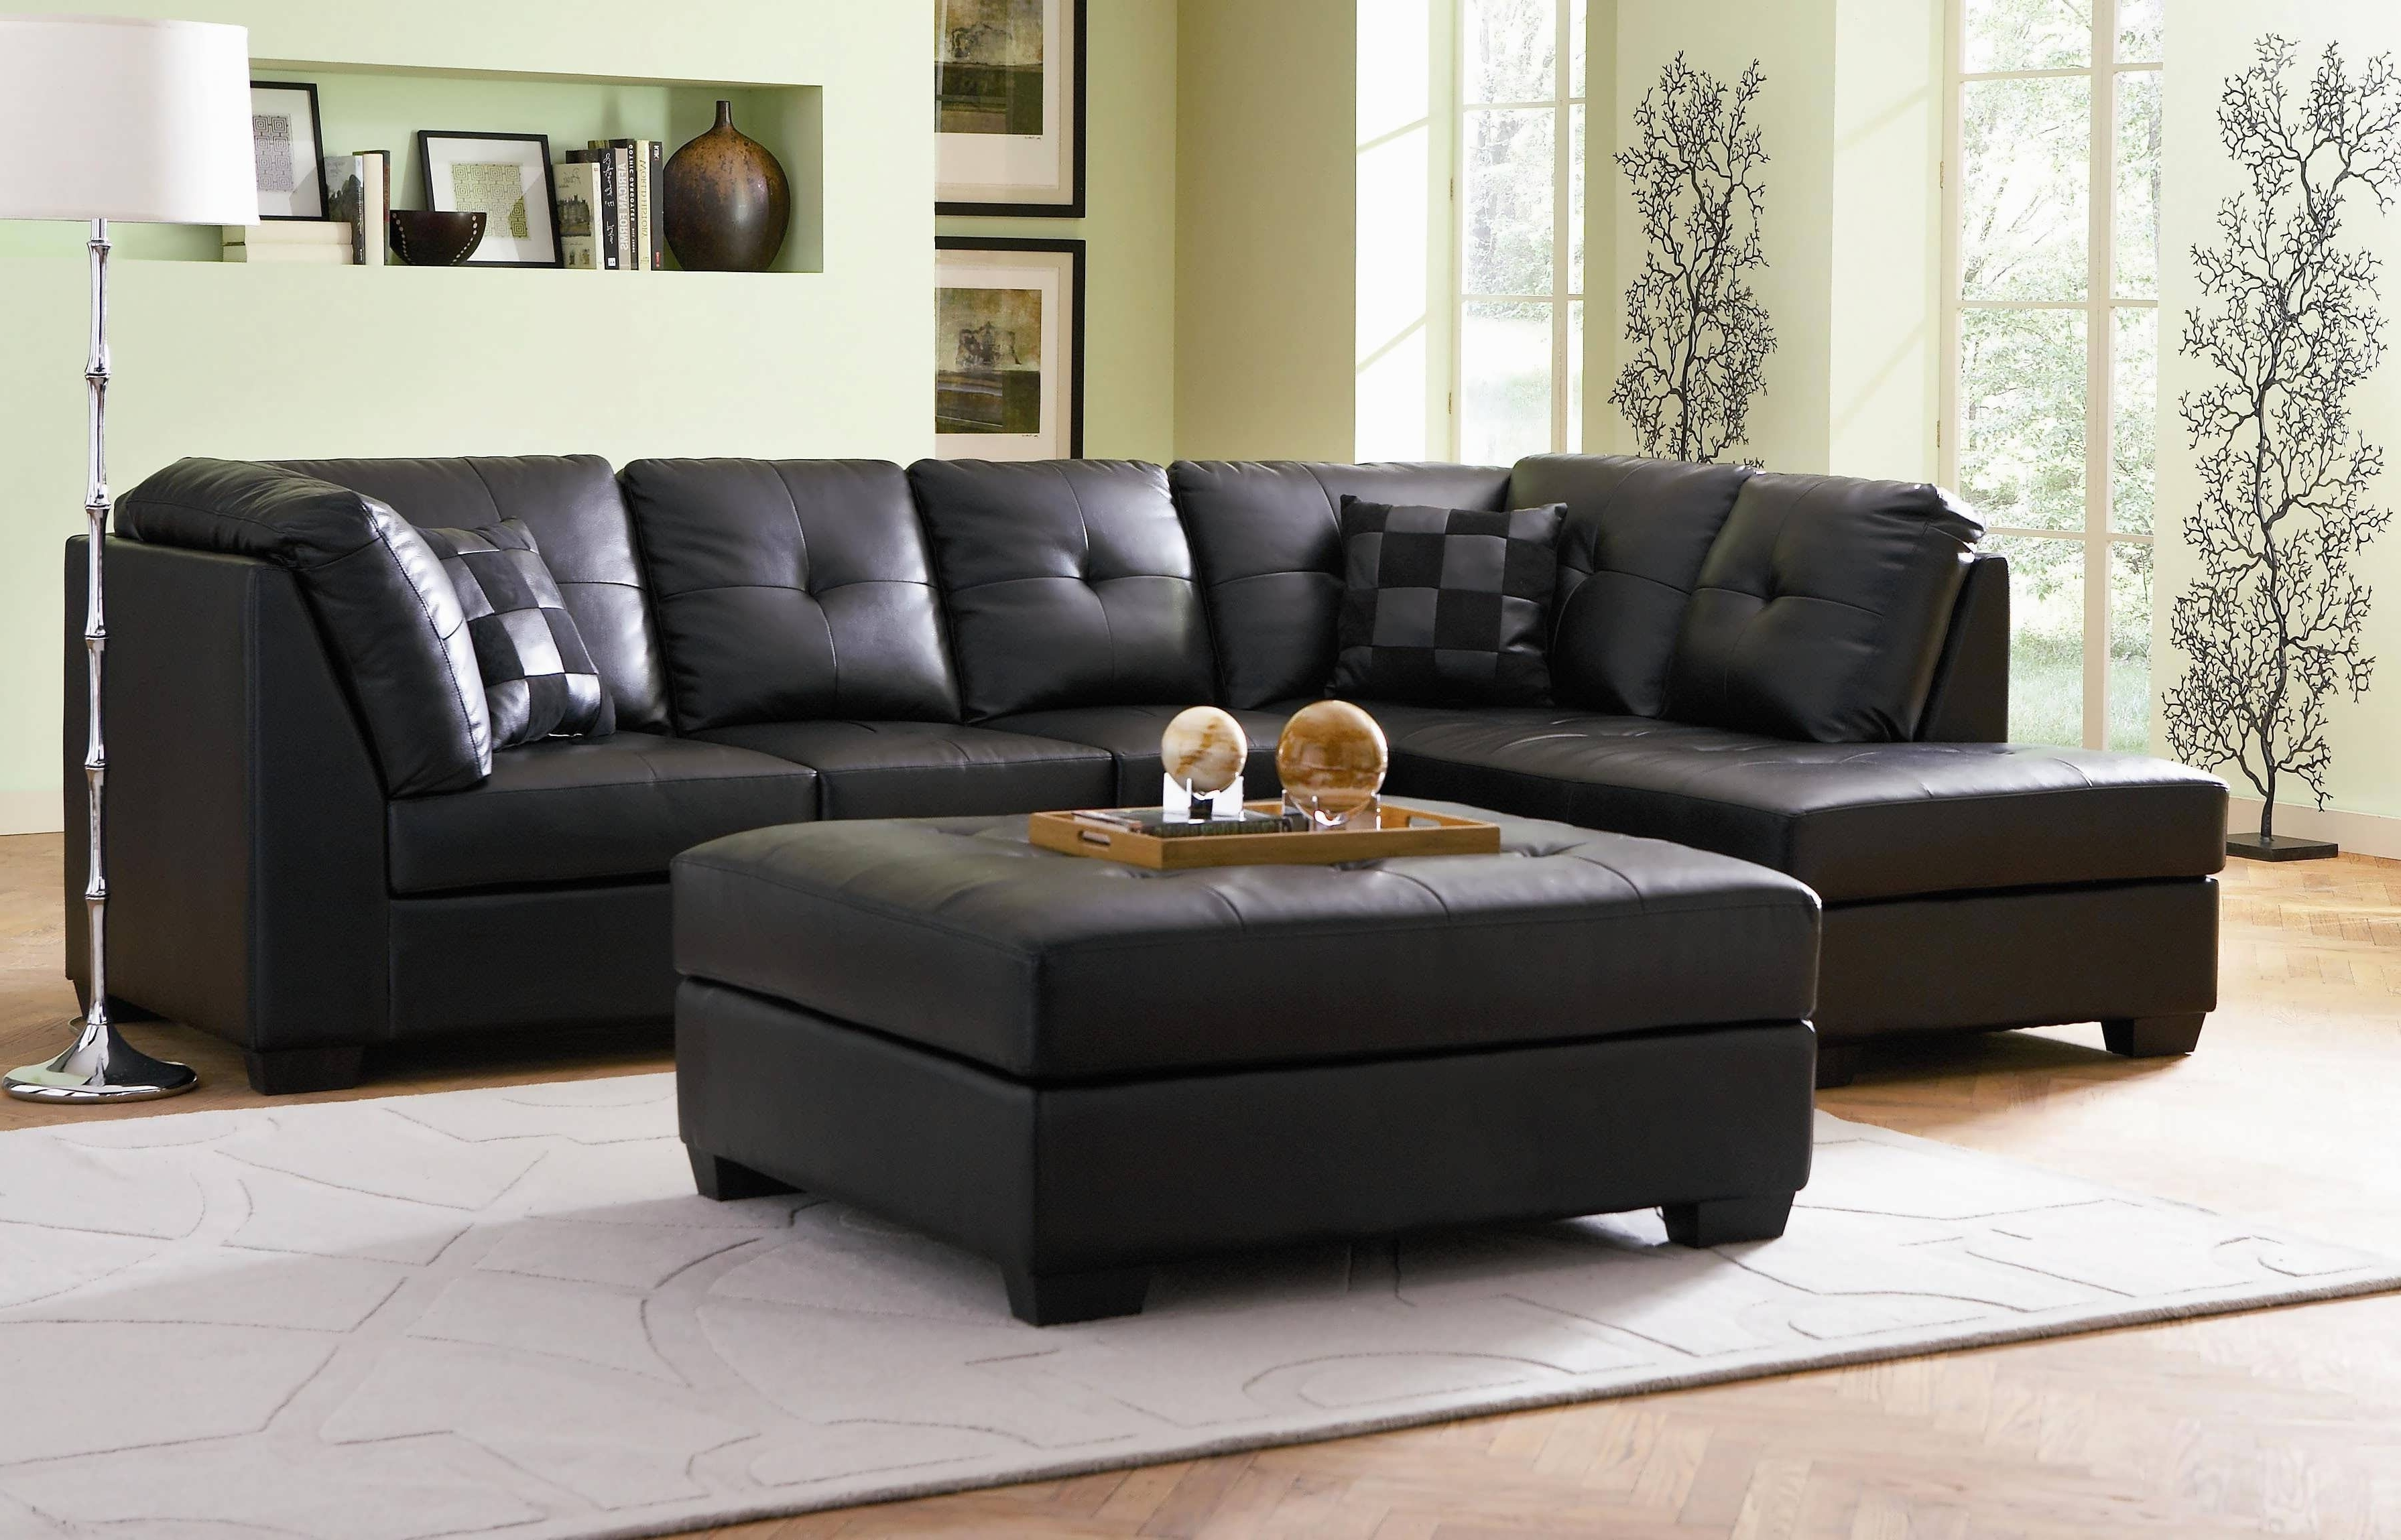 Widely Used Livingroom : Ideas For Small Living Room Space Sofa Set Designs Throughout Philippines Sectional Sofas (View 14 of 15)